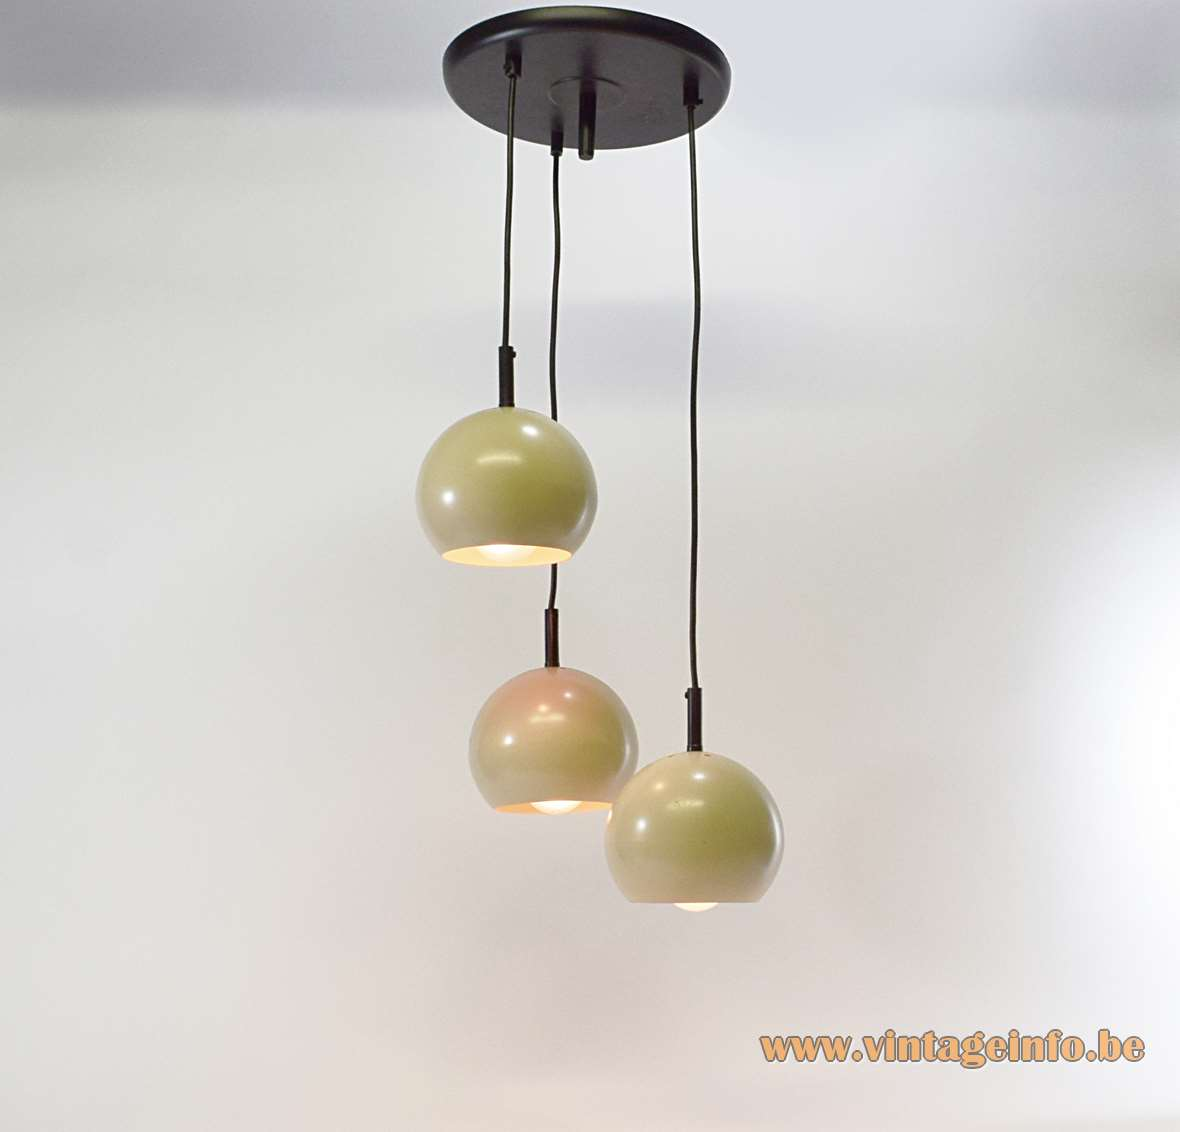 Eyeball Cascade Pendant Lamp 3 iron cream/ocher globes black metal ceiling mount Massive 1960s 1970s